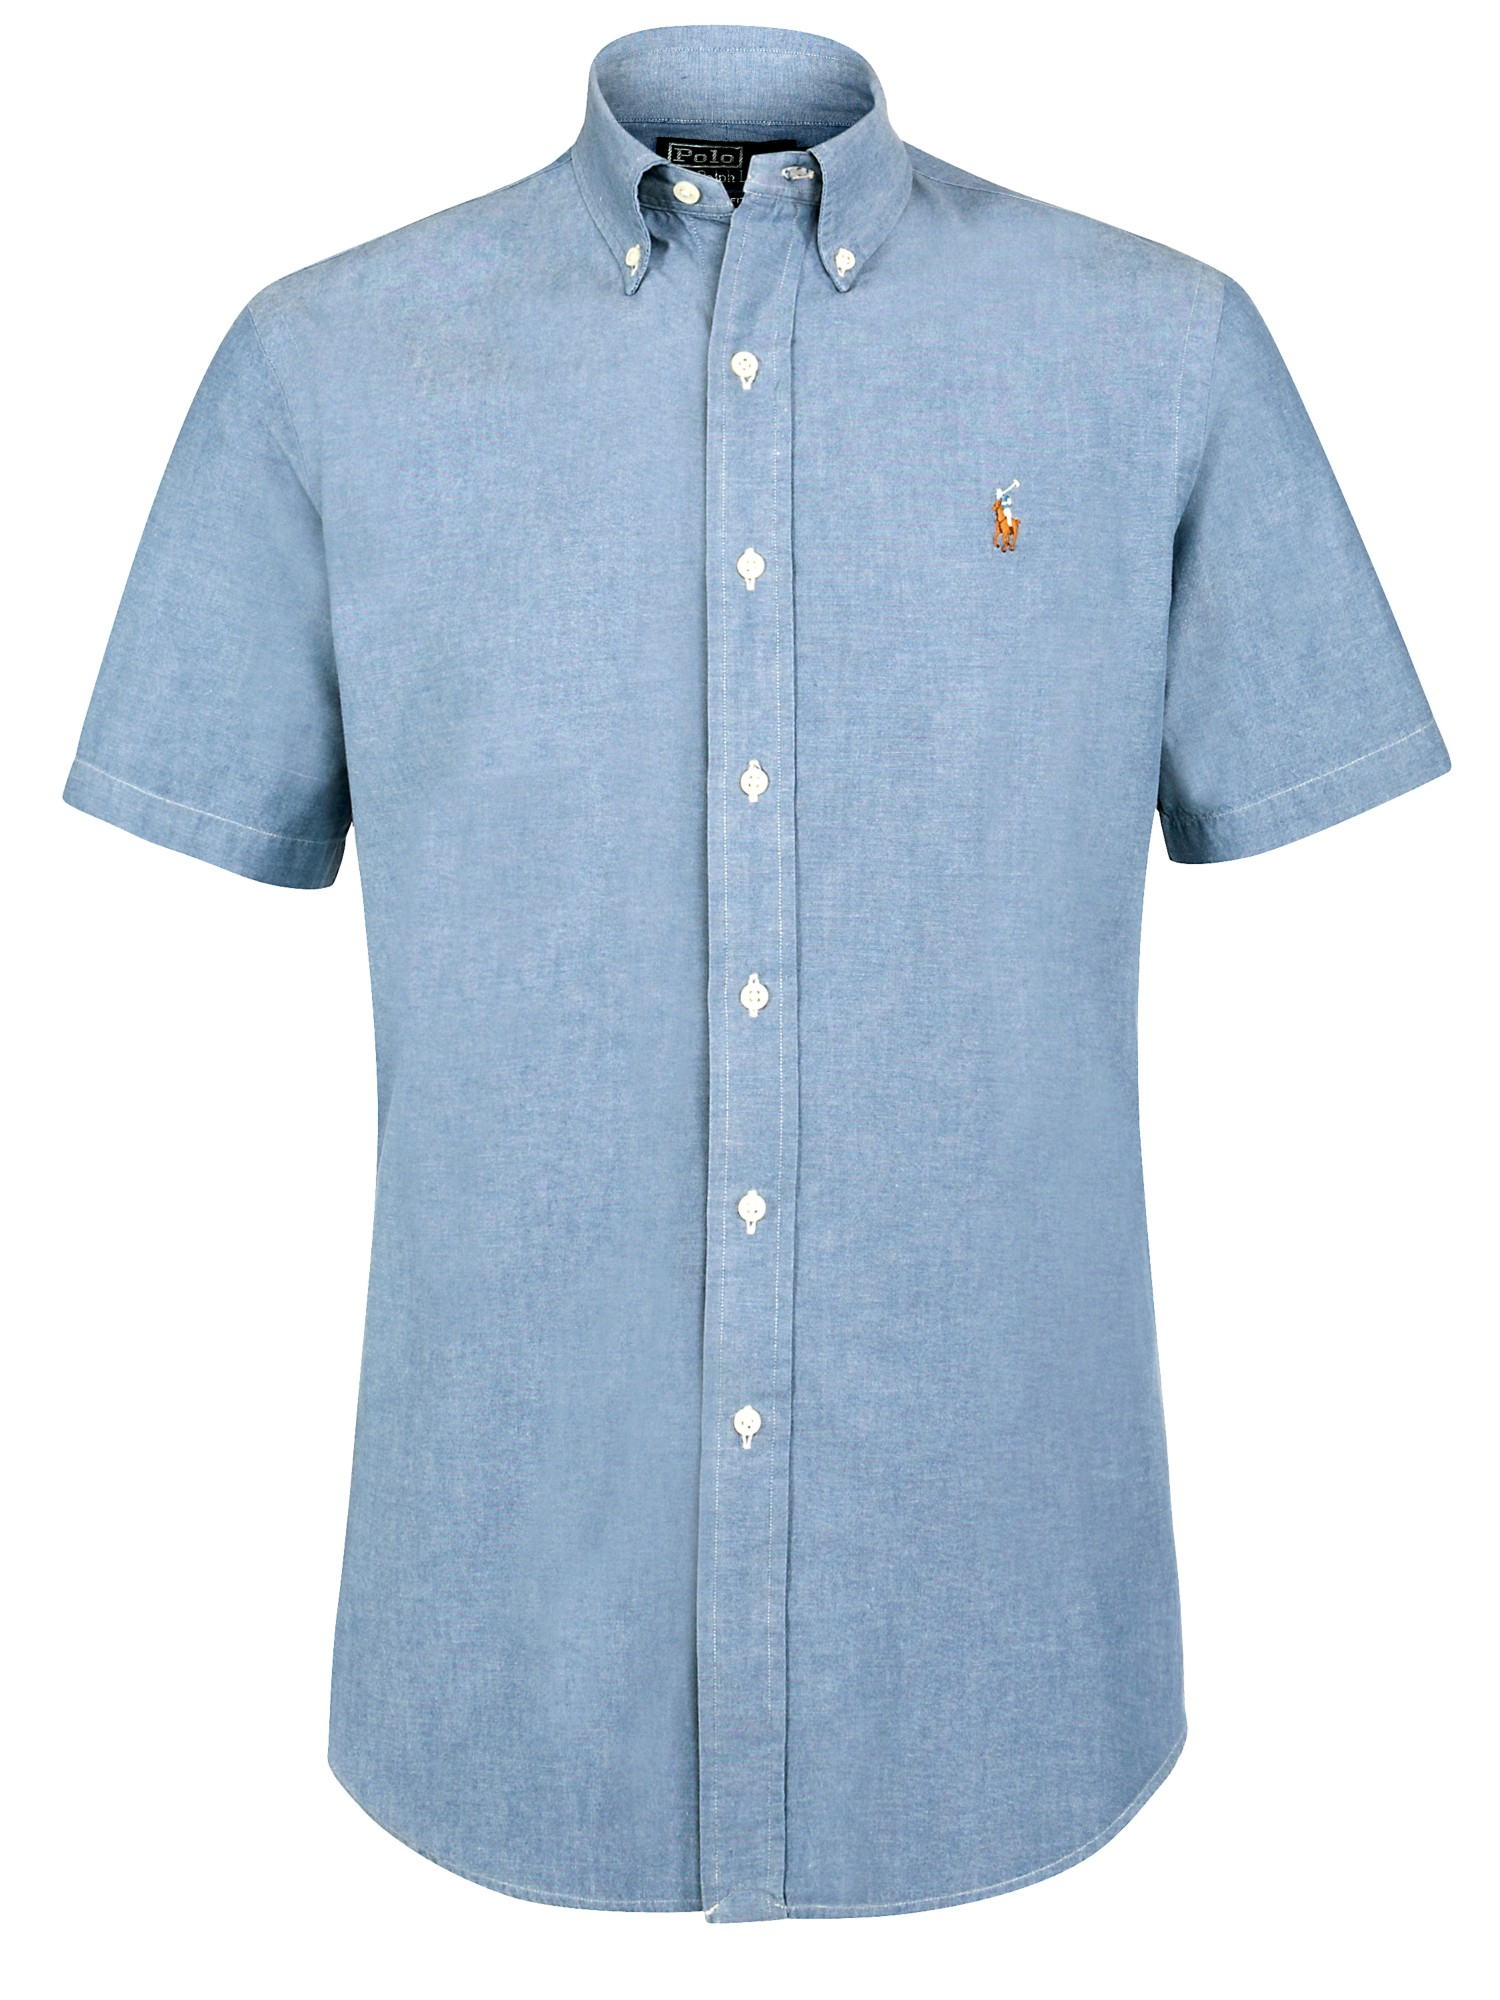 Polo Ralph Lauren Chambray Short Sleeve Shirt In Blue For